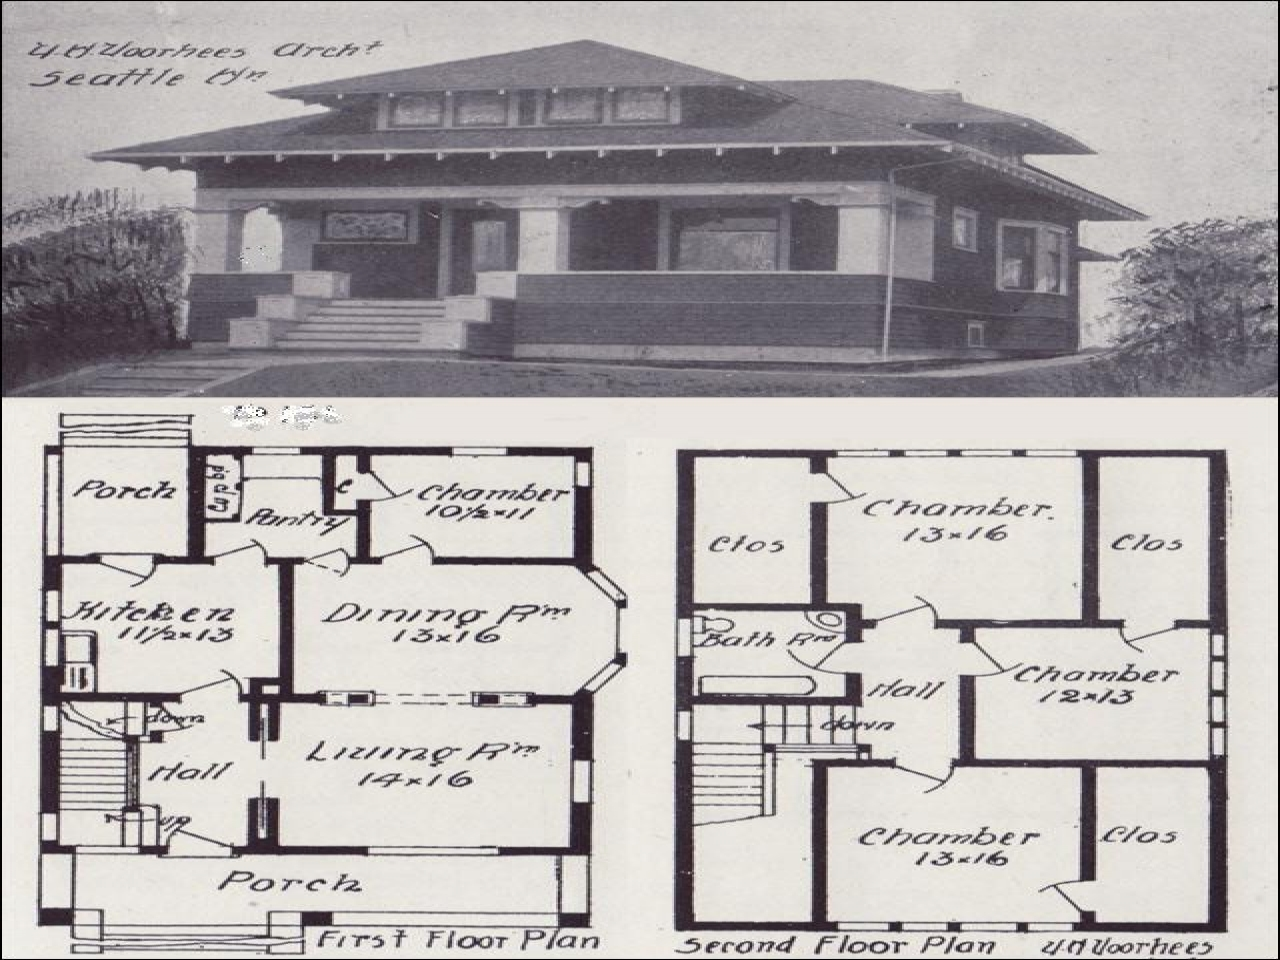 Vintage craftsman single story bungalow vintage craftsman for Single story craftsman bungalow house plans